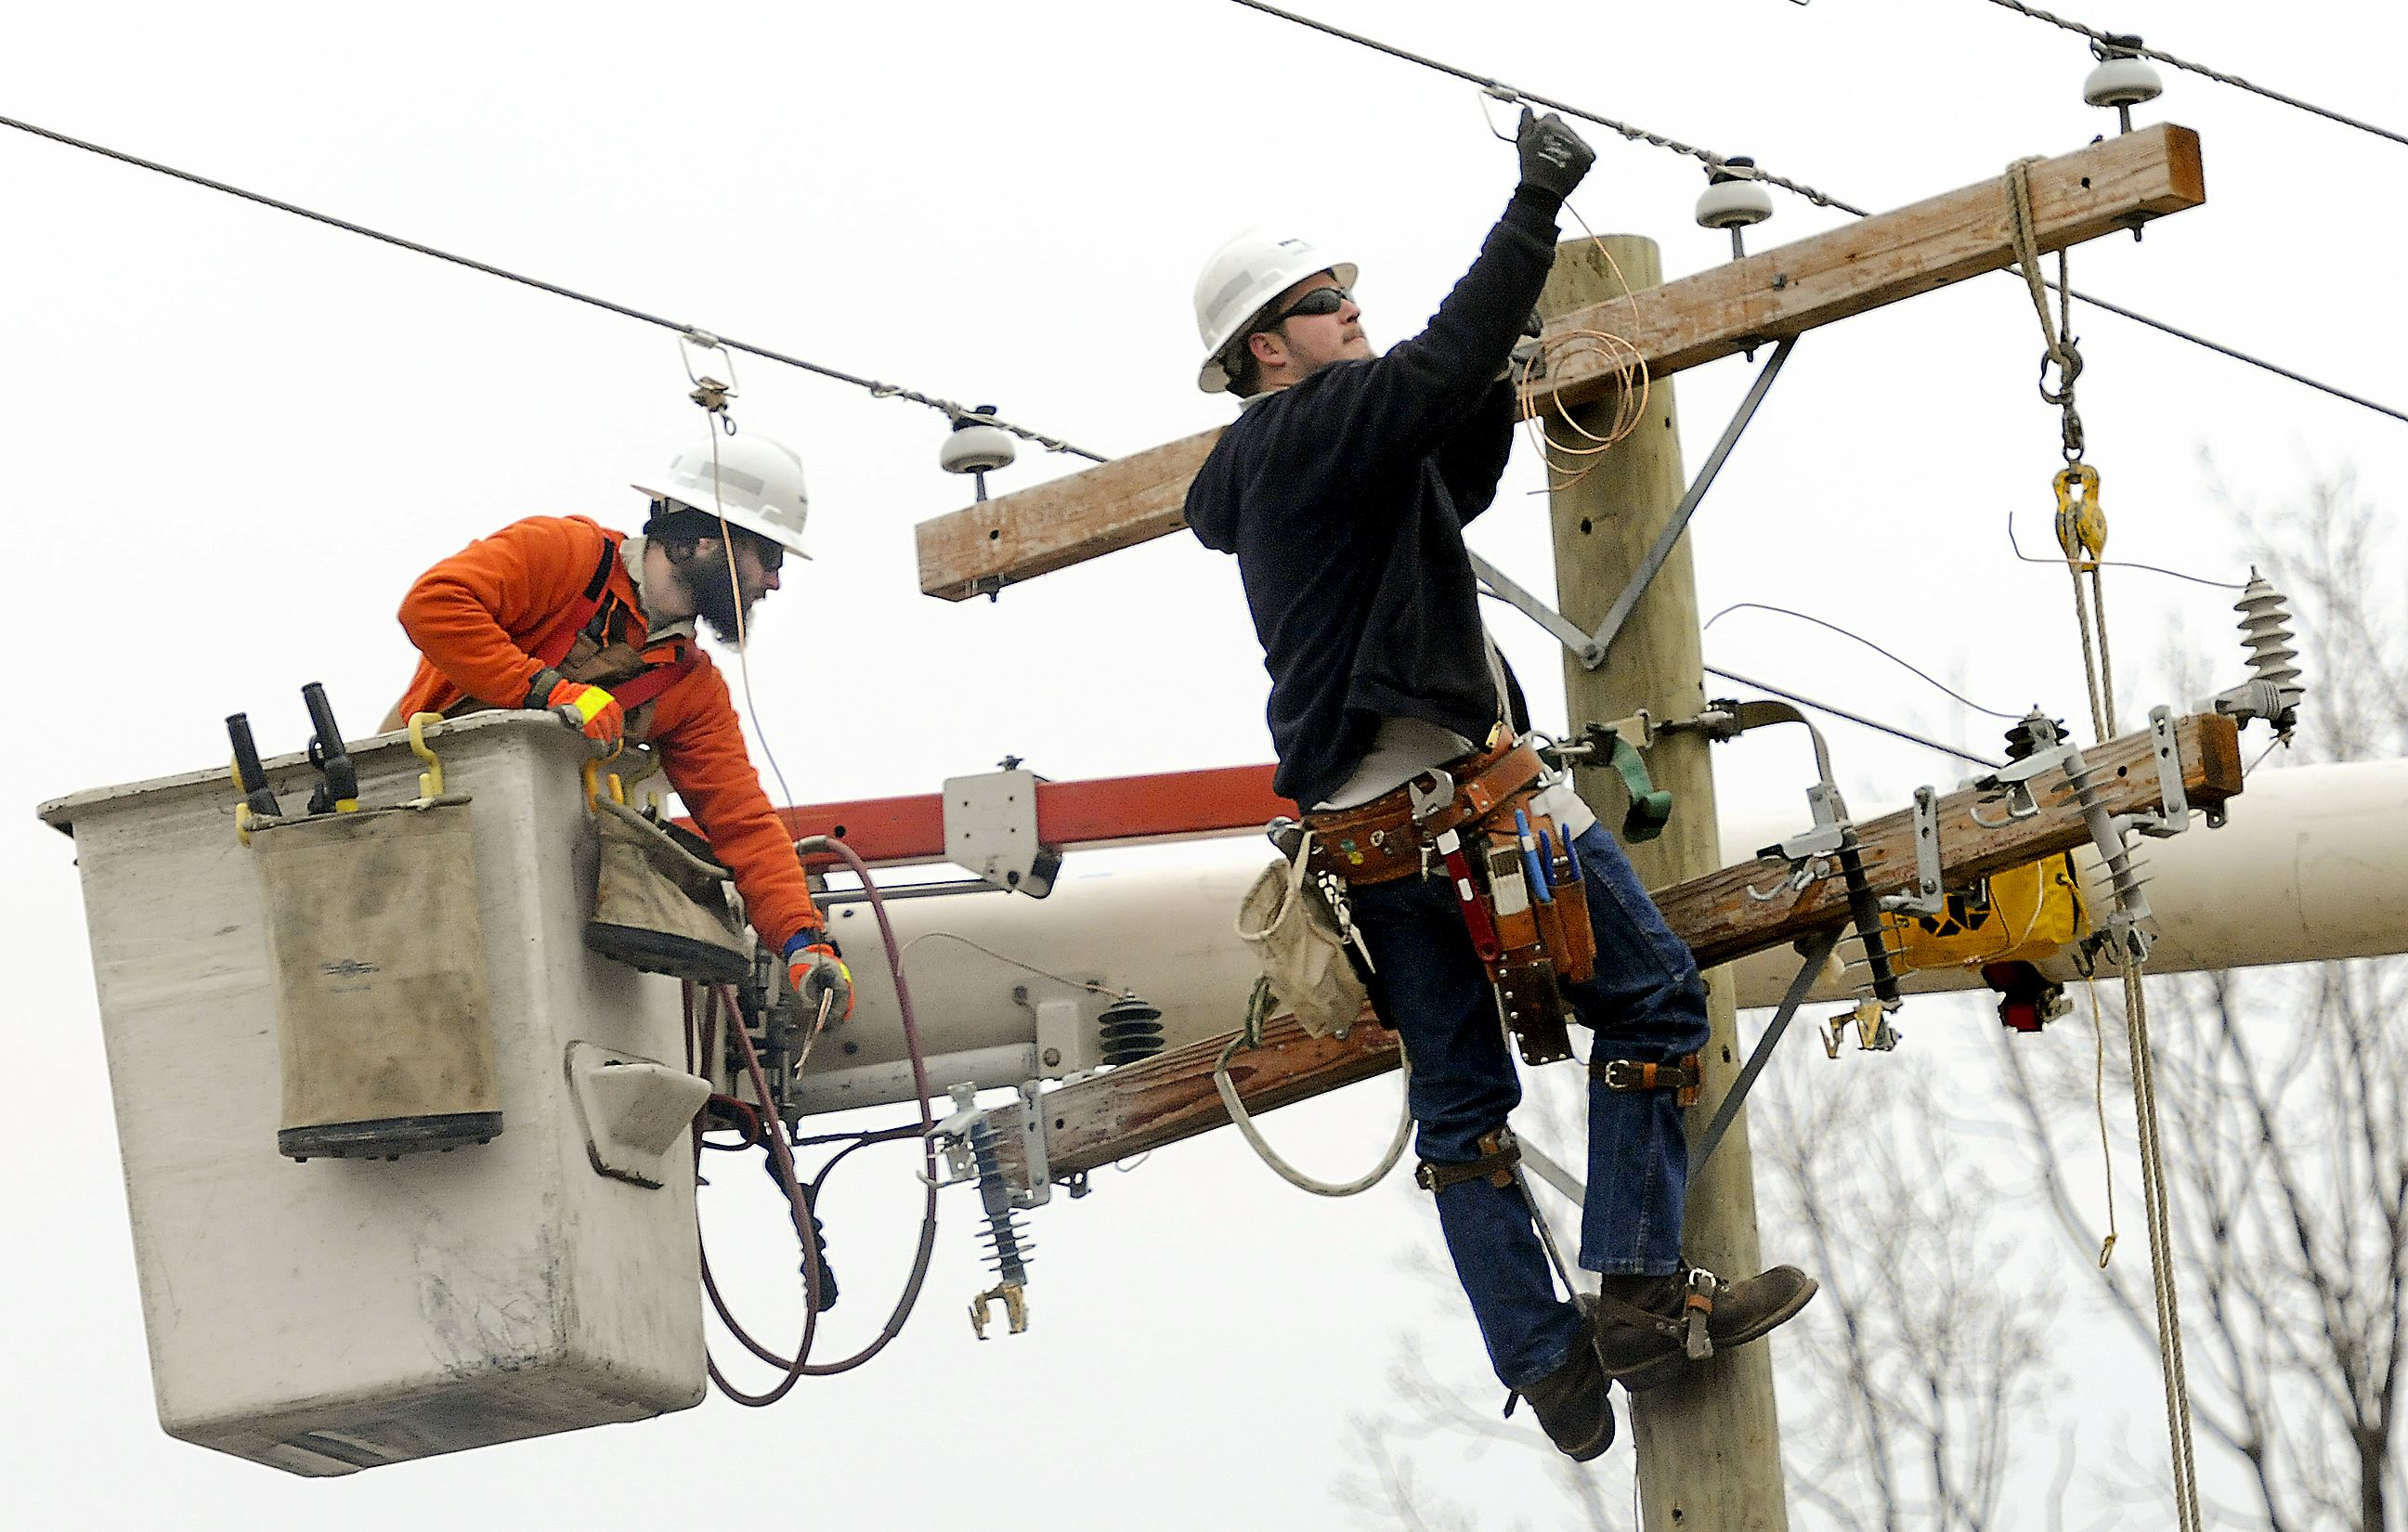 Electric Power Utility : Preparing for retirements utility companies are putting